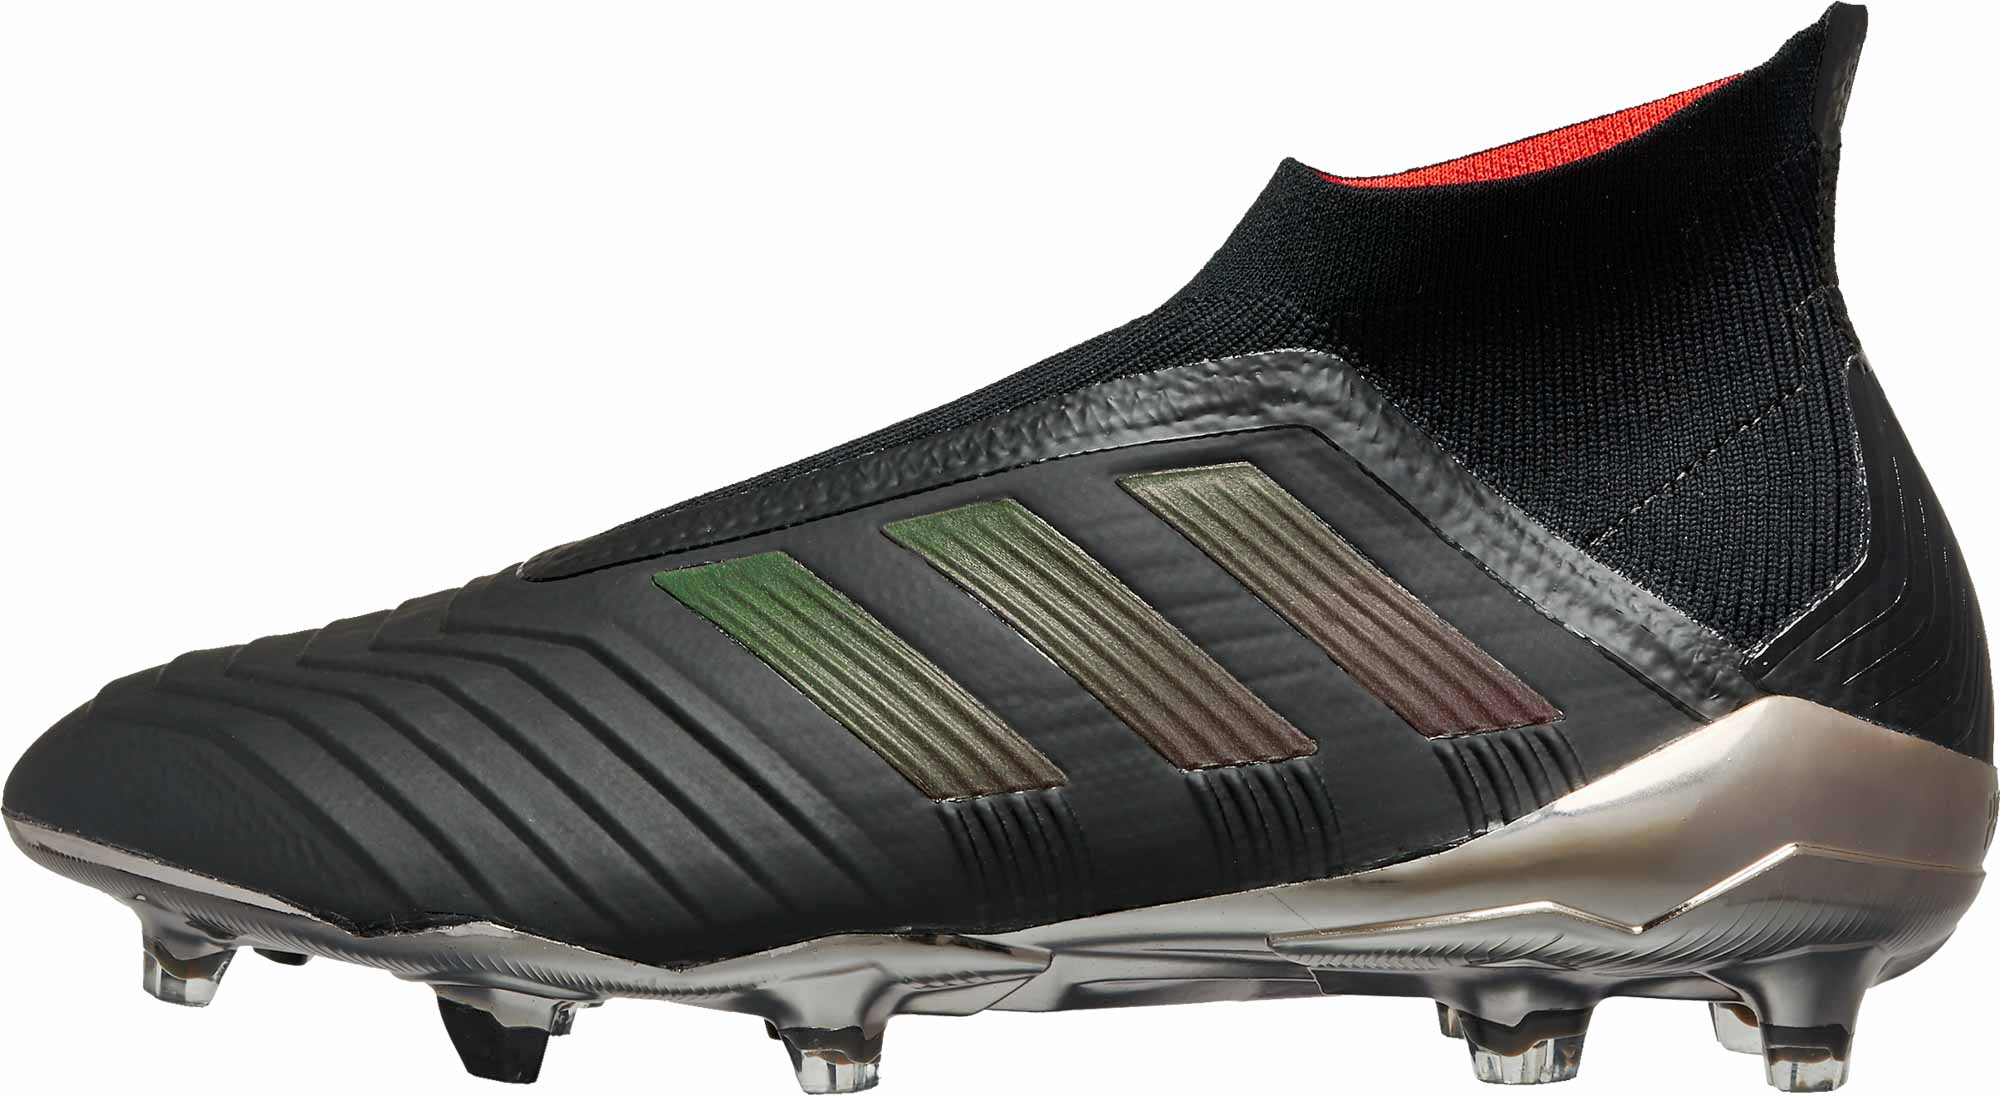 Adidas Soccer Shoes Youth Size